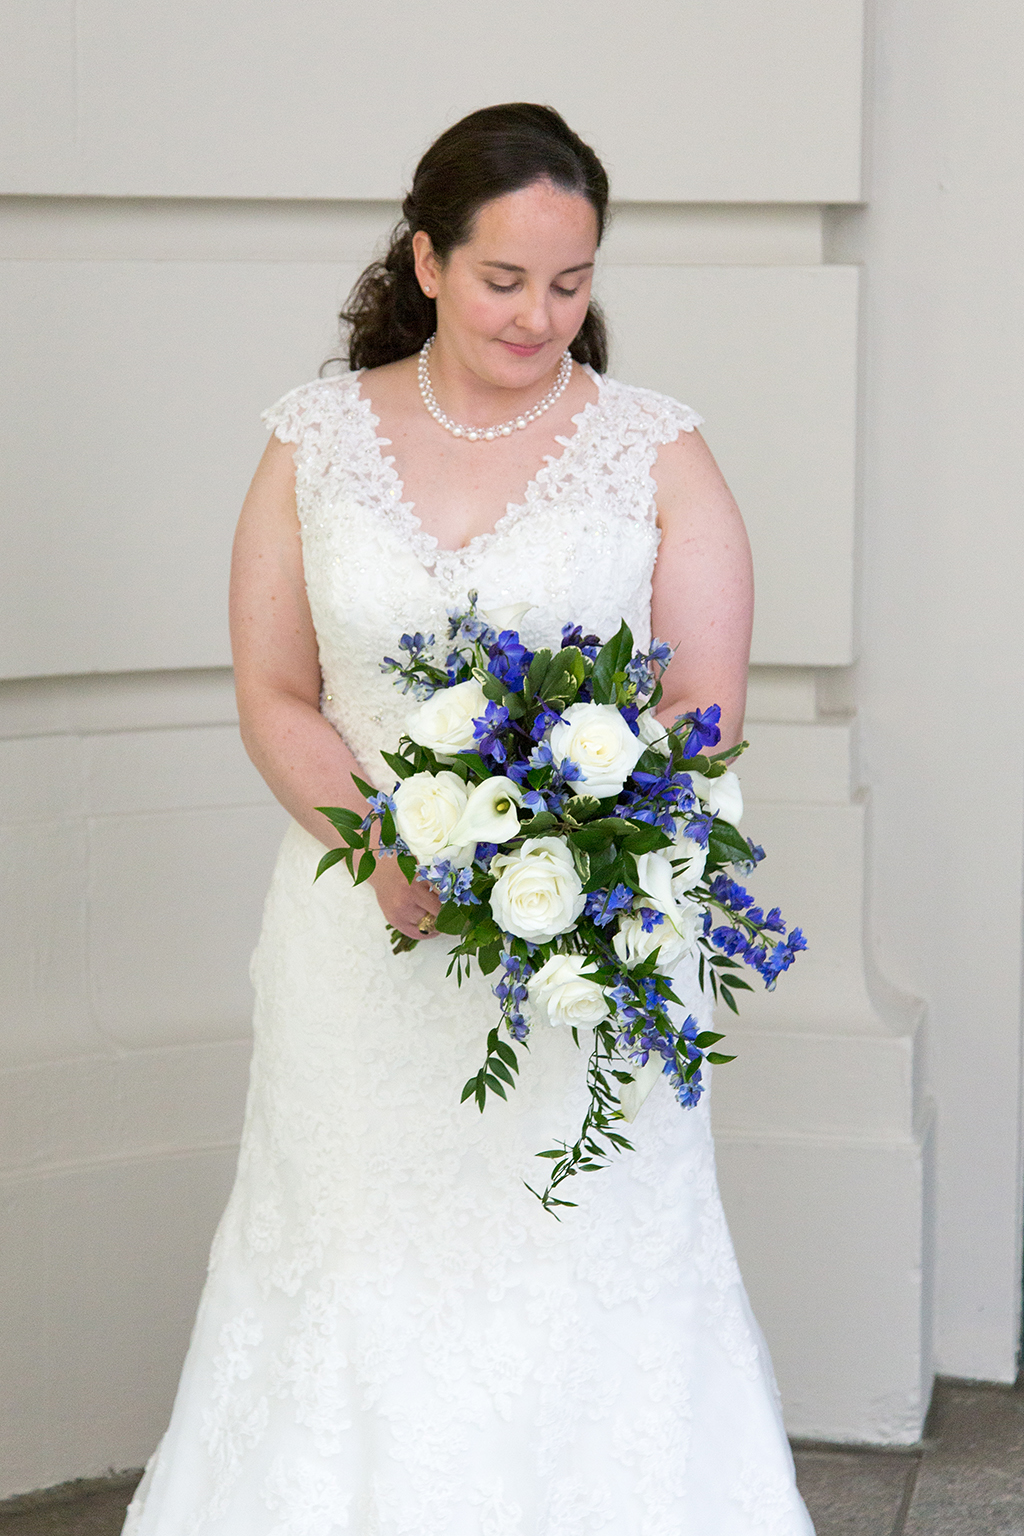 This Naval Officer Bride Unwittingly Smuggled Her Own Engagement Ring Overseas to Her Air Force Officer Groom images 9